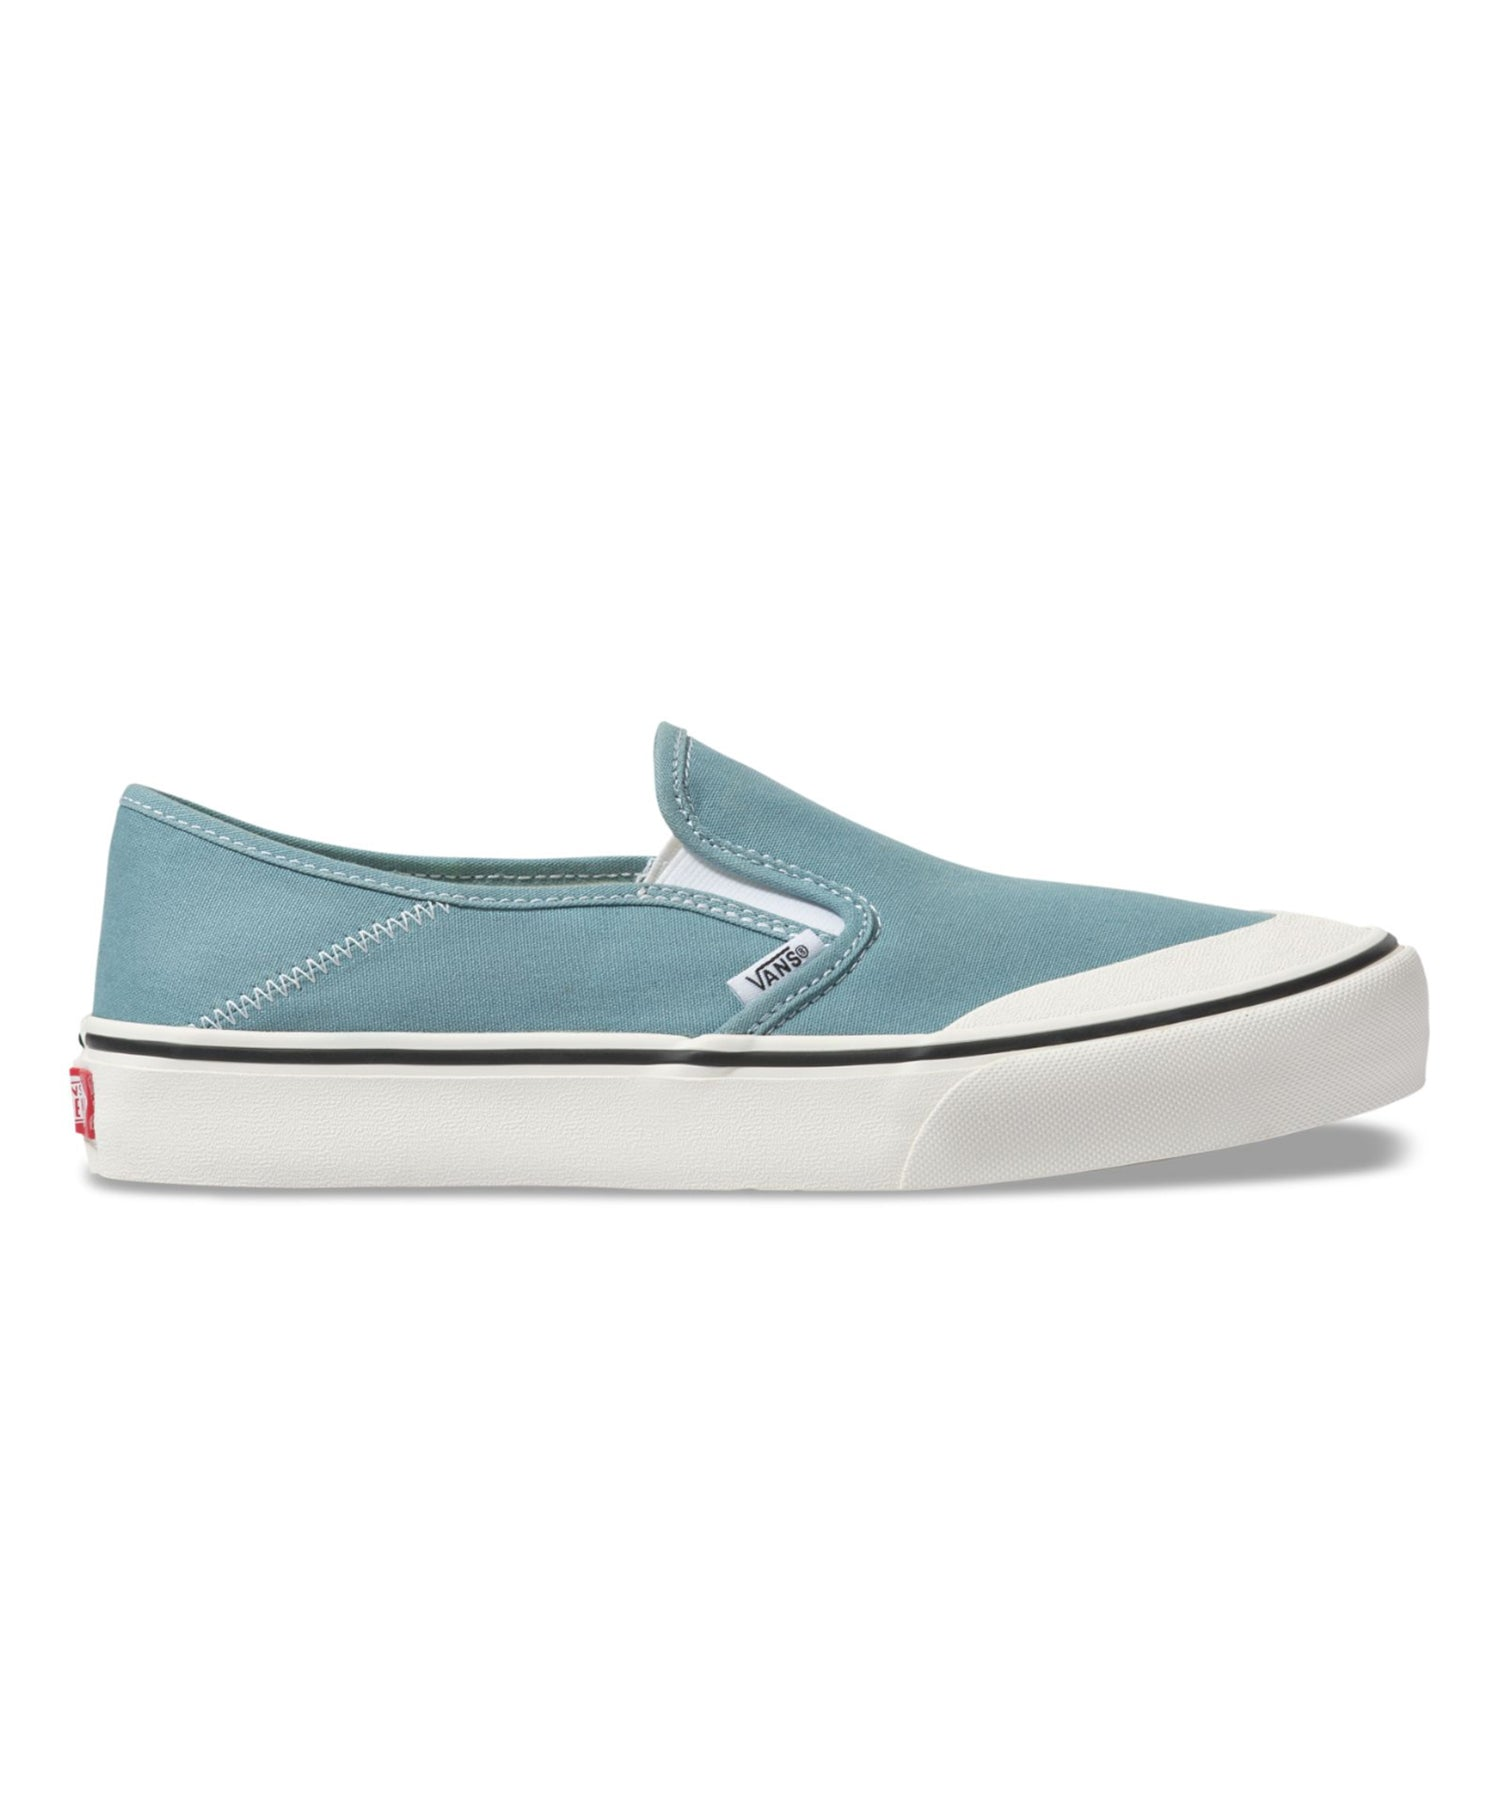 Vans Classic Slip-On in Smoke Blue